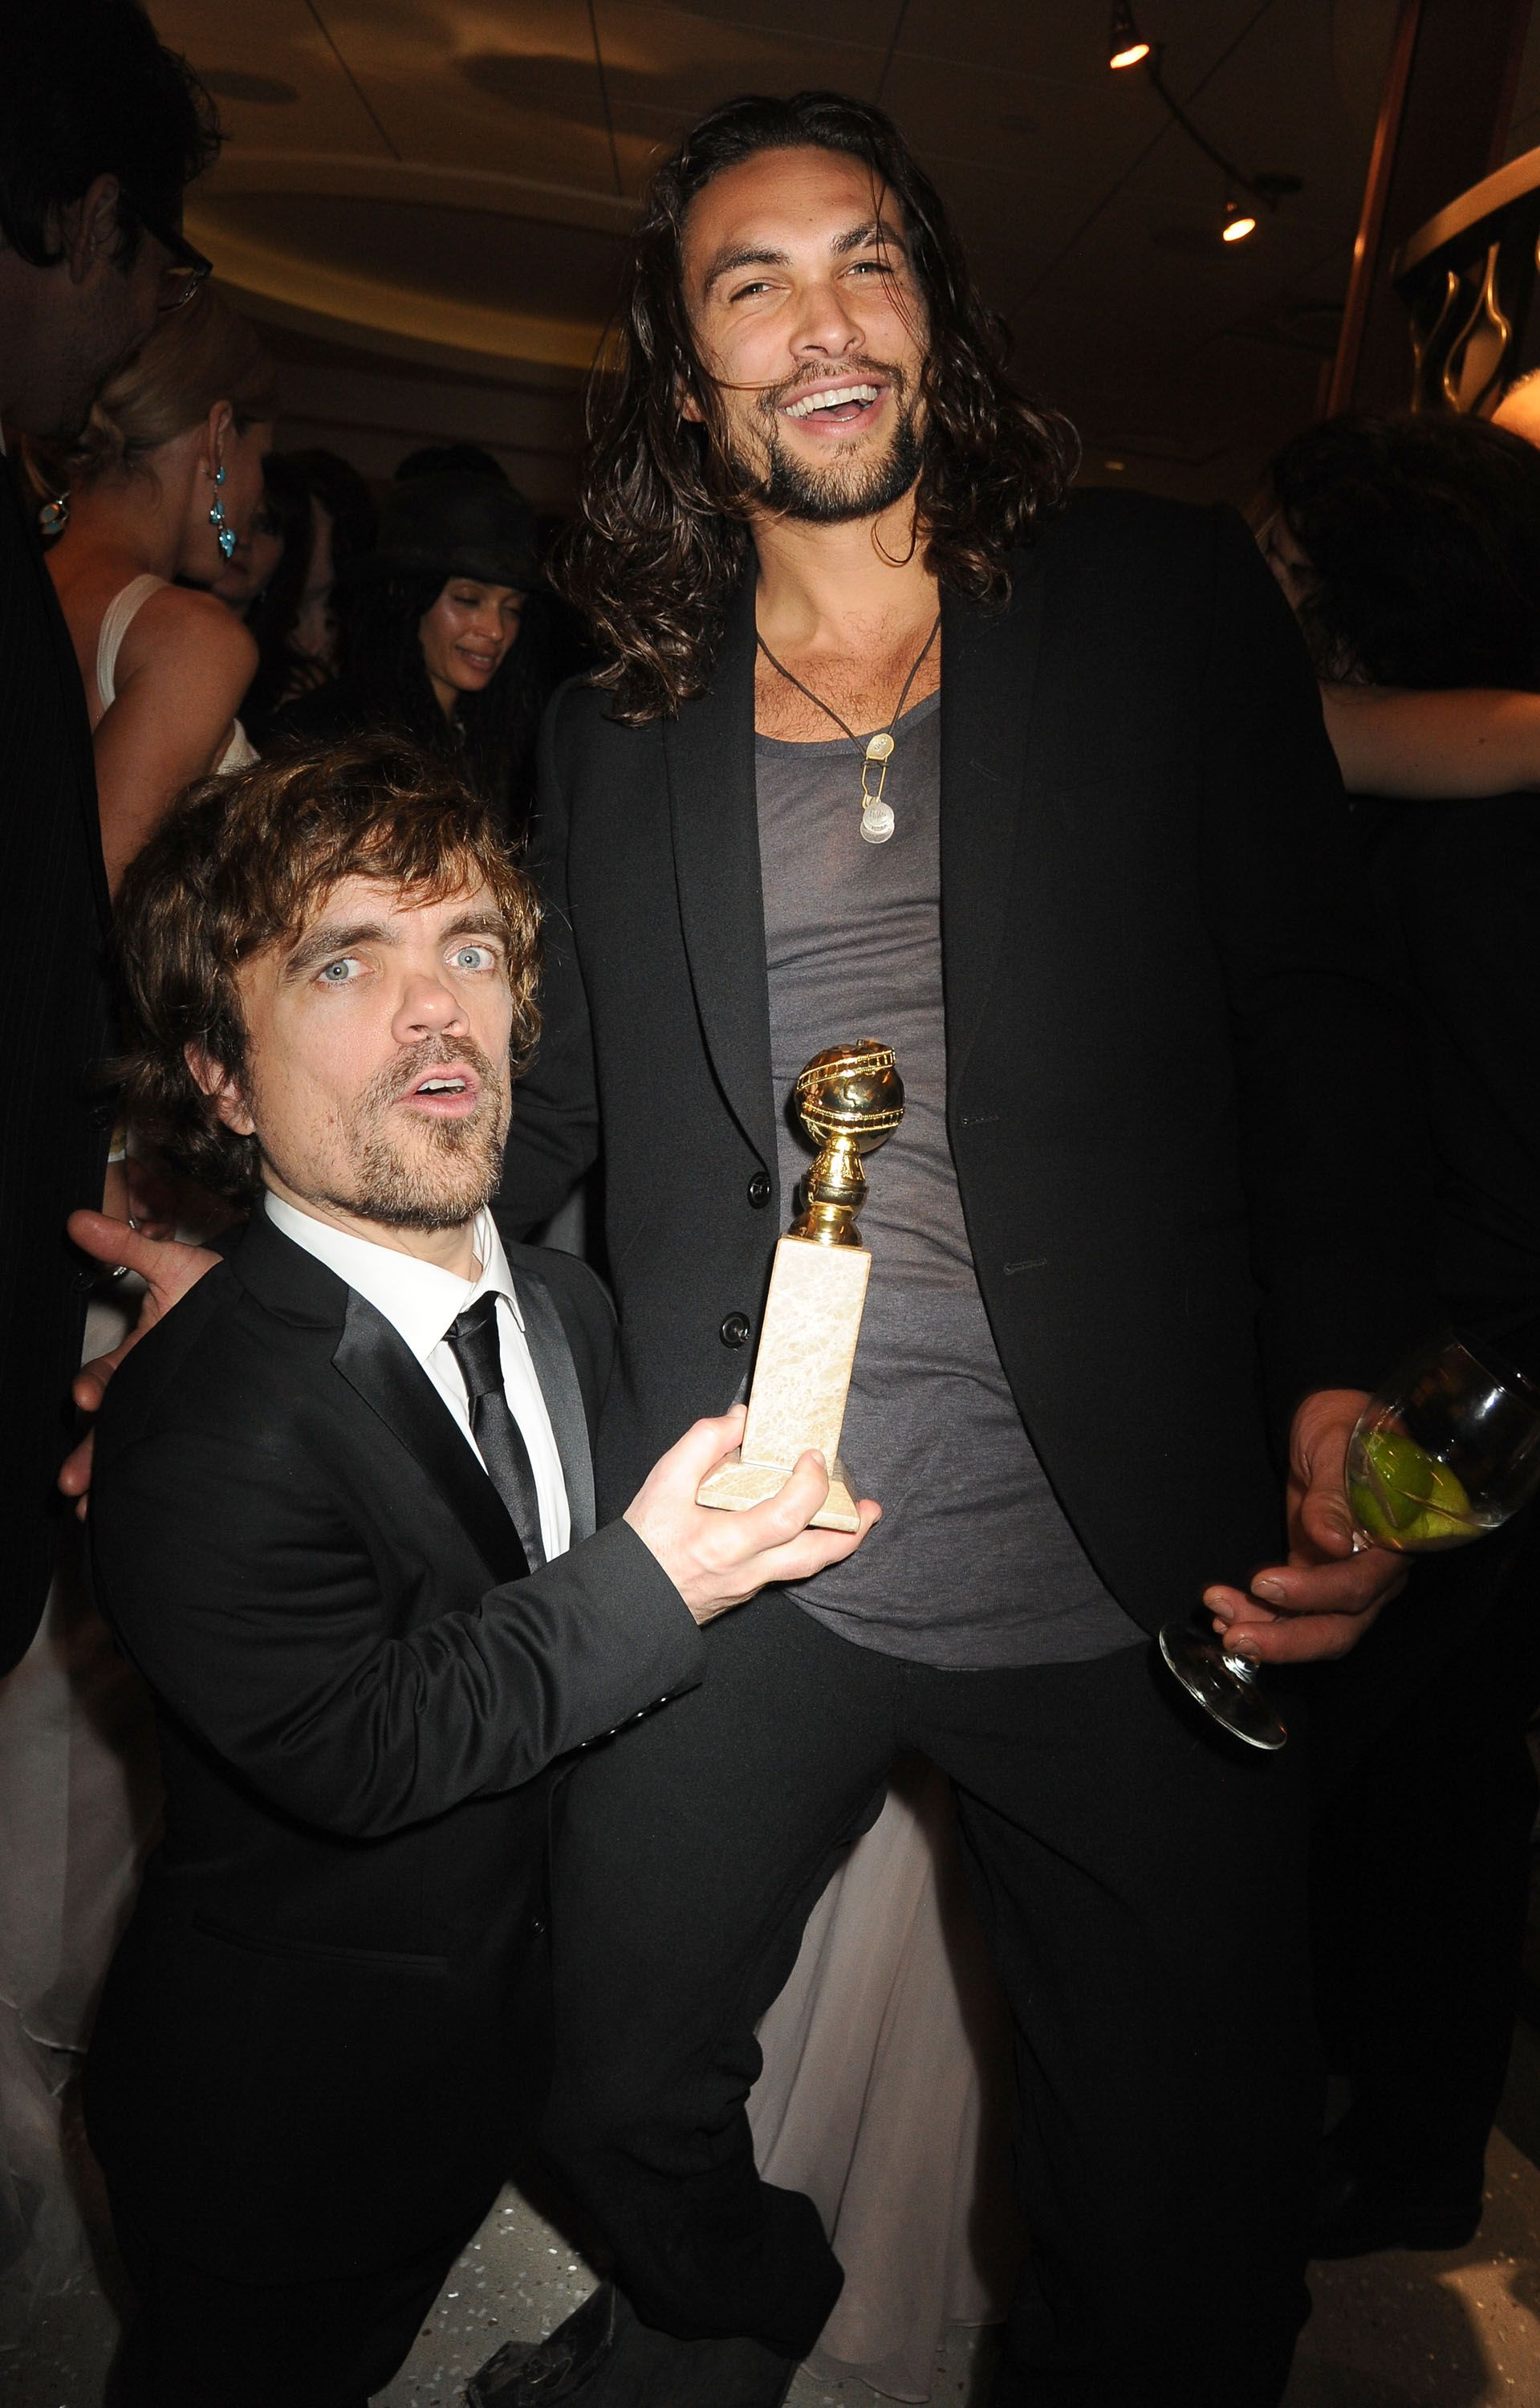 Peter Dinklage and Jason Momoa at the HBO's Official After Party for the 69th Annual Golden Globe Awards in 2012 in Beverly Hills, California   Source: Getty Images